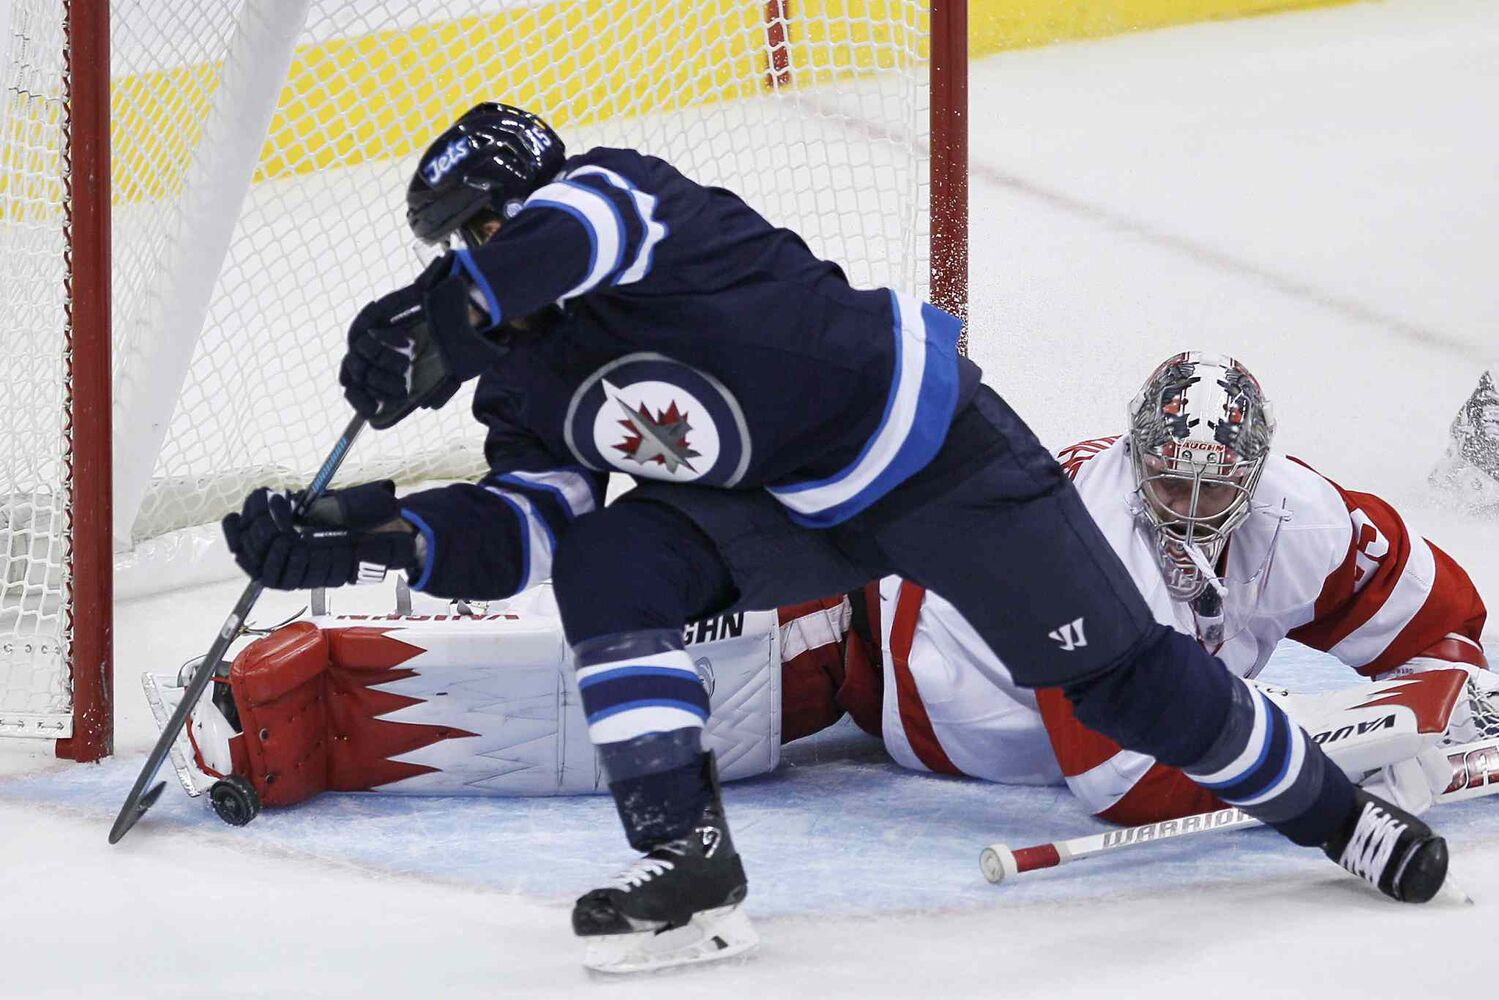 Winnipeg Jets forward Matt Halishchuk is stopped by Detroit Red Wings goaltender Jimmy Howard in the first period.